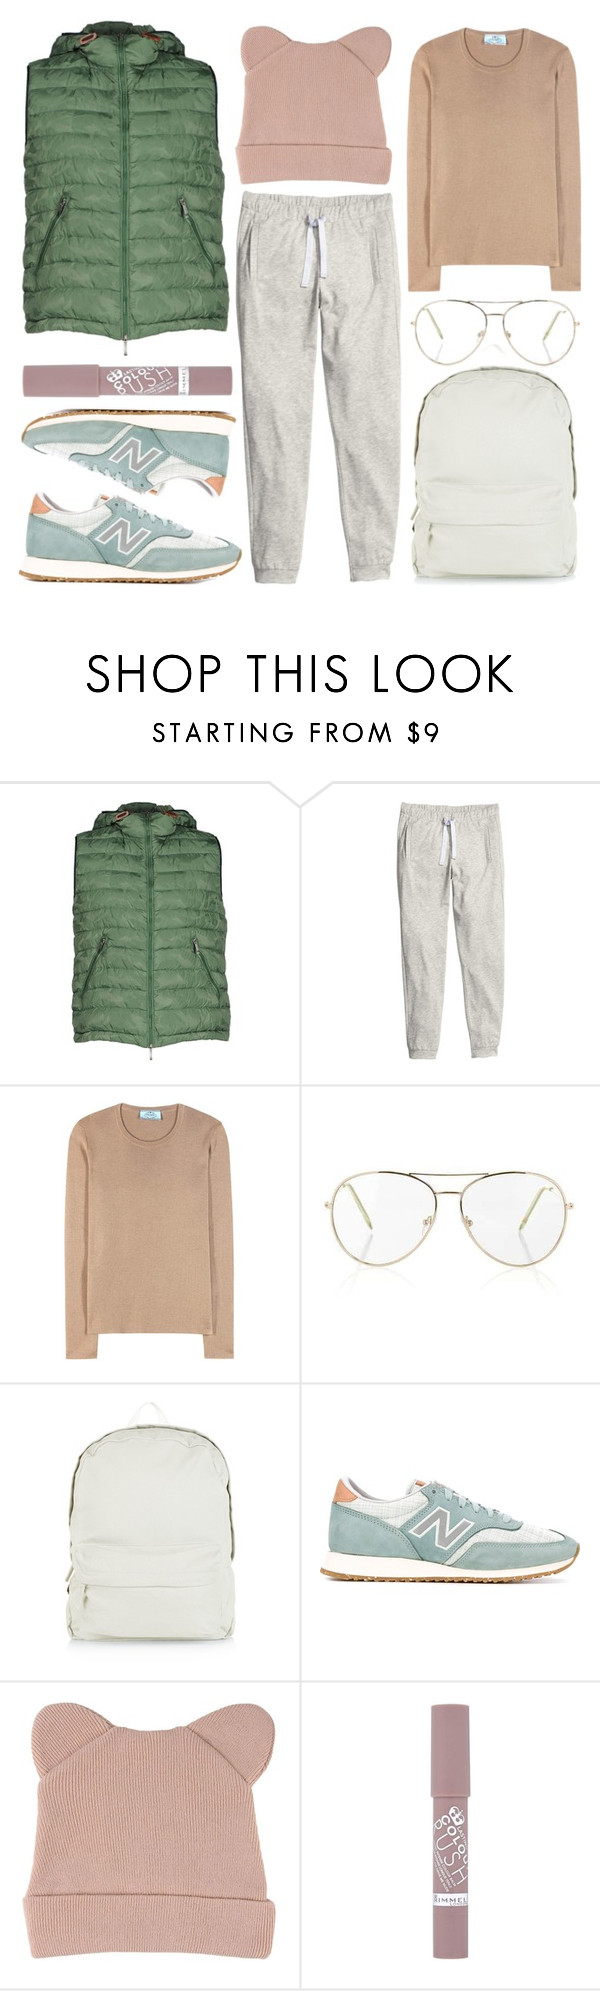 """winter run"" by foundlostme ❤ liked on Polyvore featuring Up To Be, H&M, Prada, Topshop, New Look, New Balance, George J. Love, Rimmel, Winter and jogging"